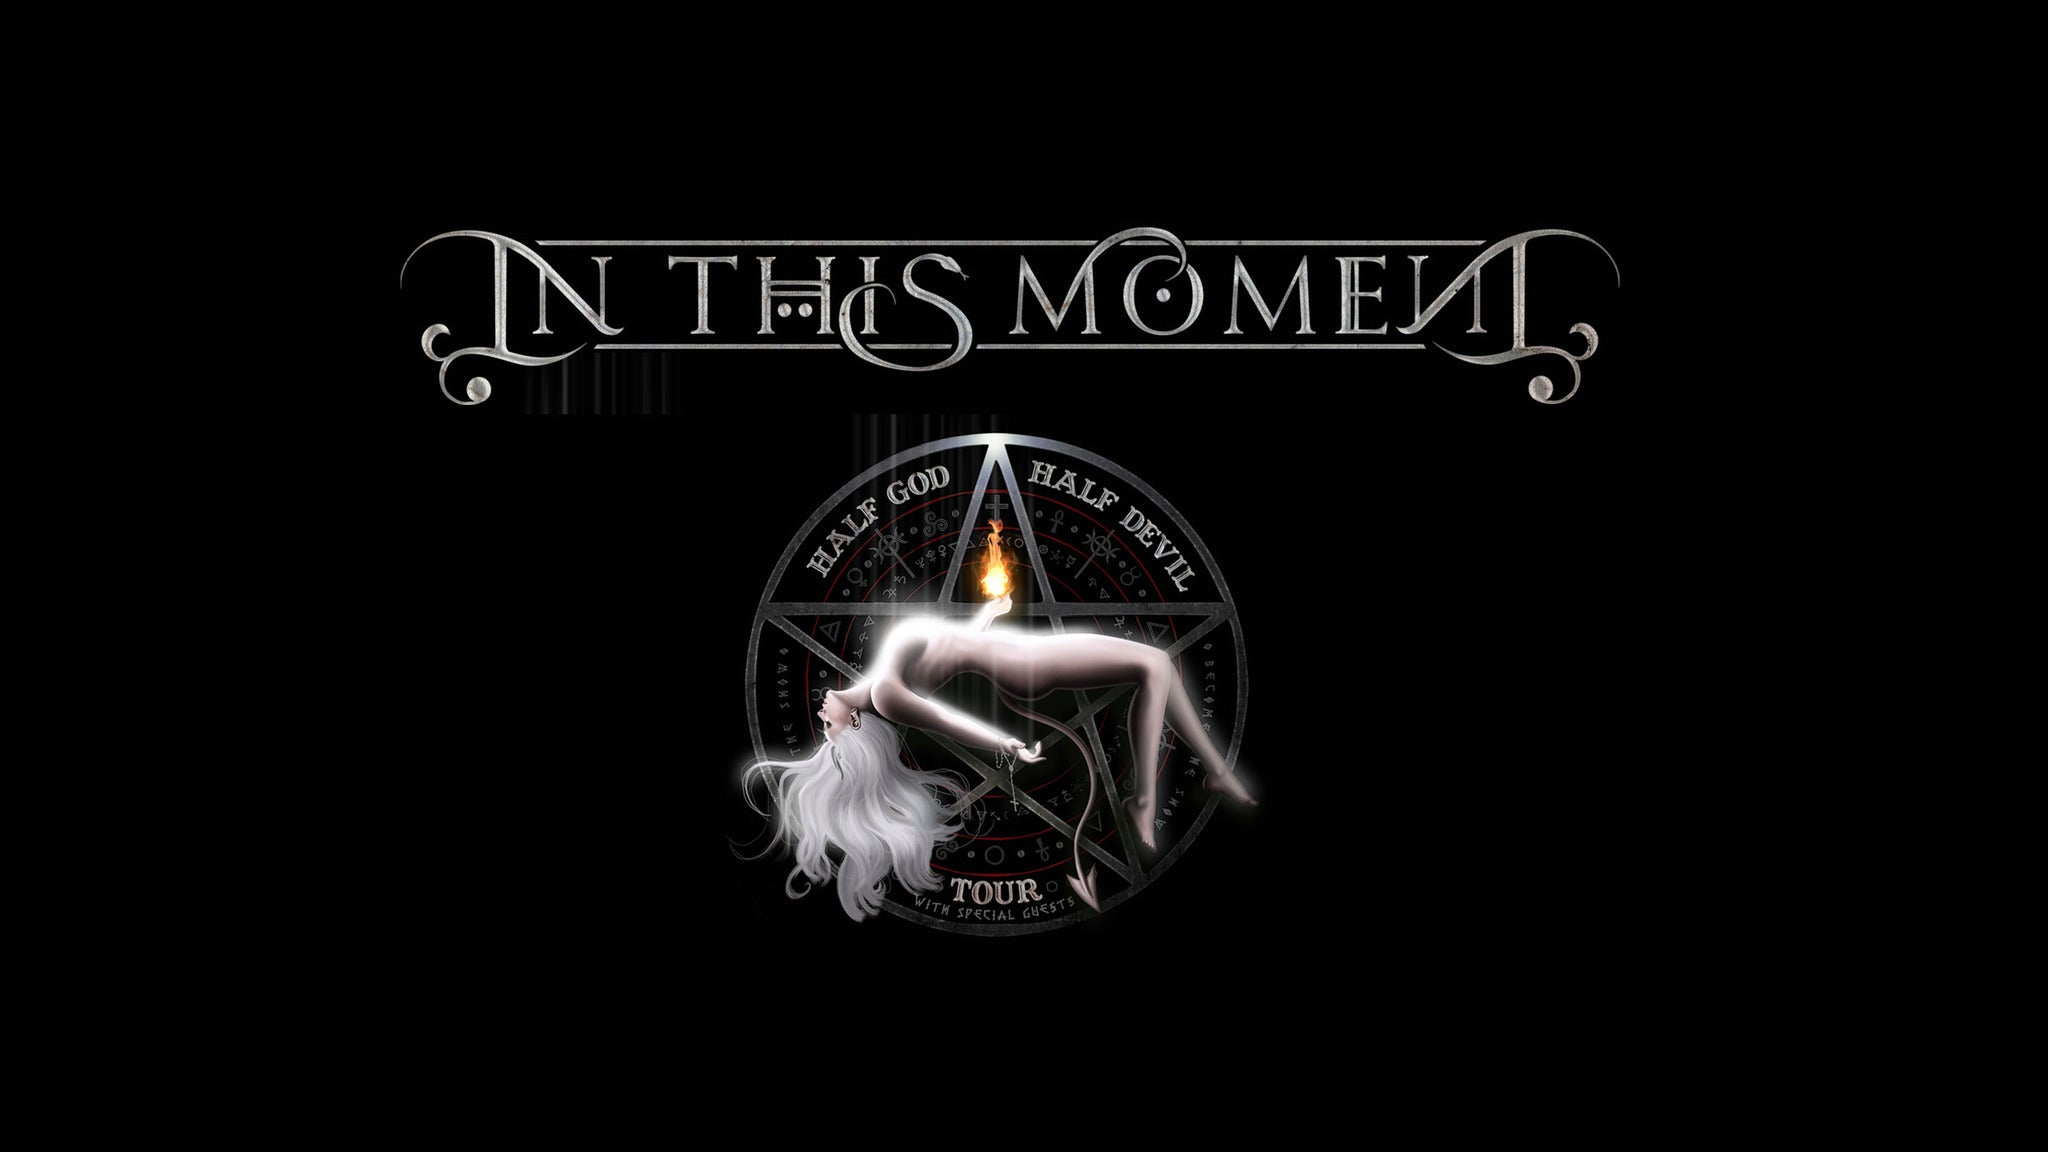 In This Moment: HALF GOD/HALF DEVIL TOUR at The Masquerade